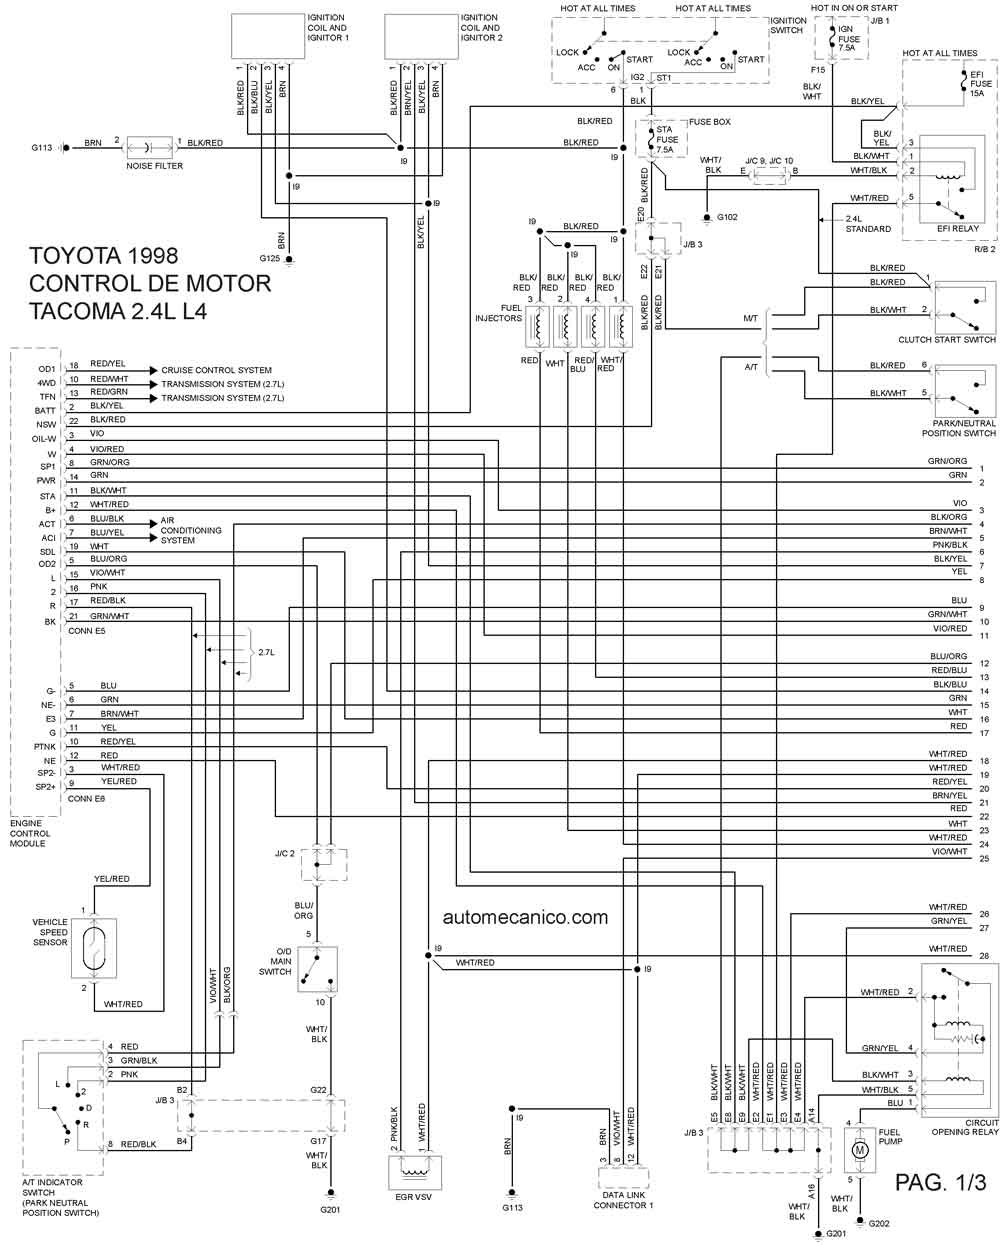 Toyota Tercel Engine Diagram Porsche 356 Engine Diagram